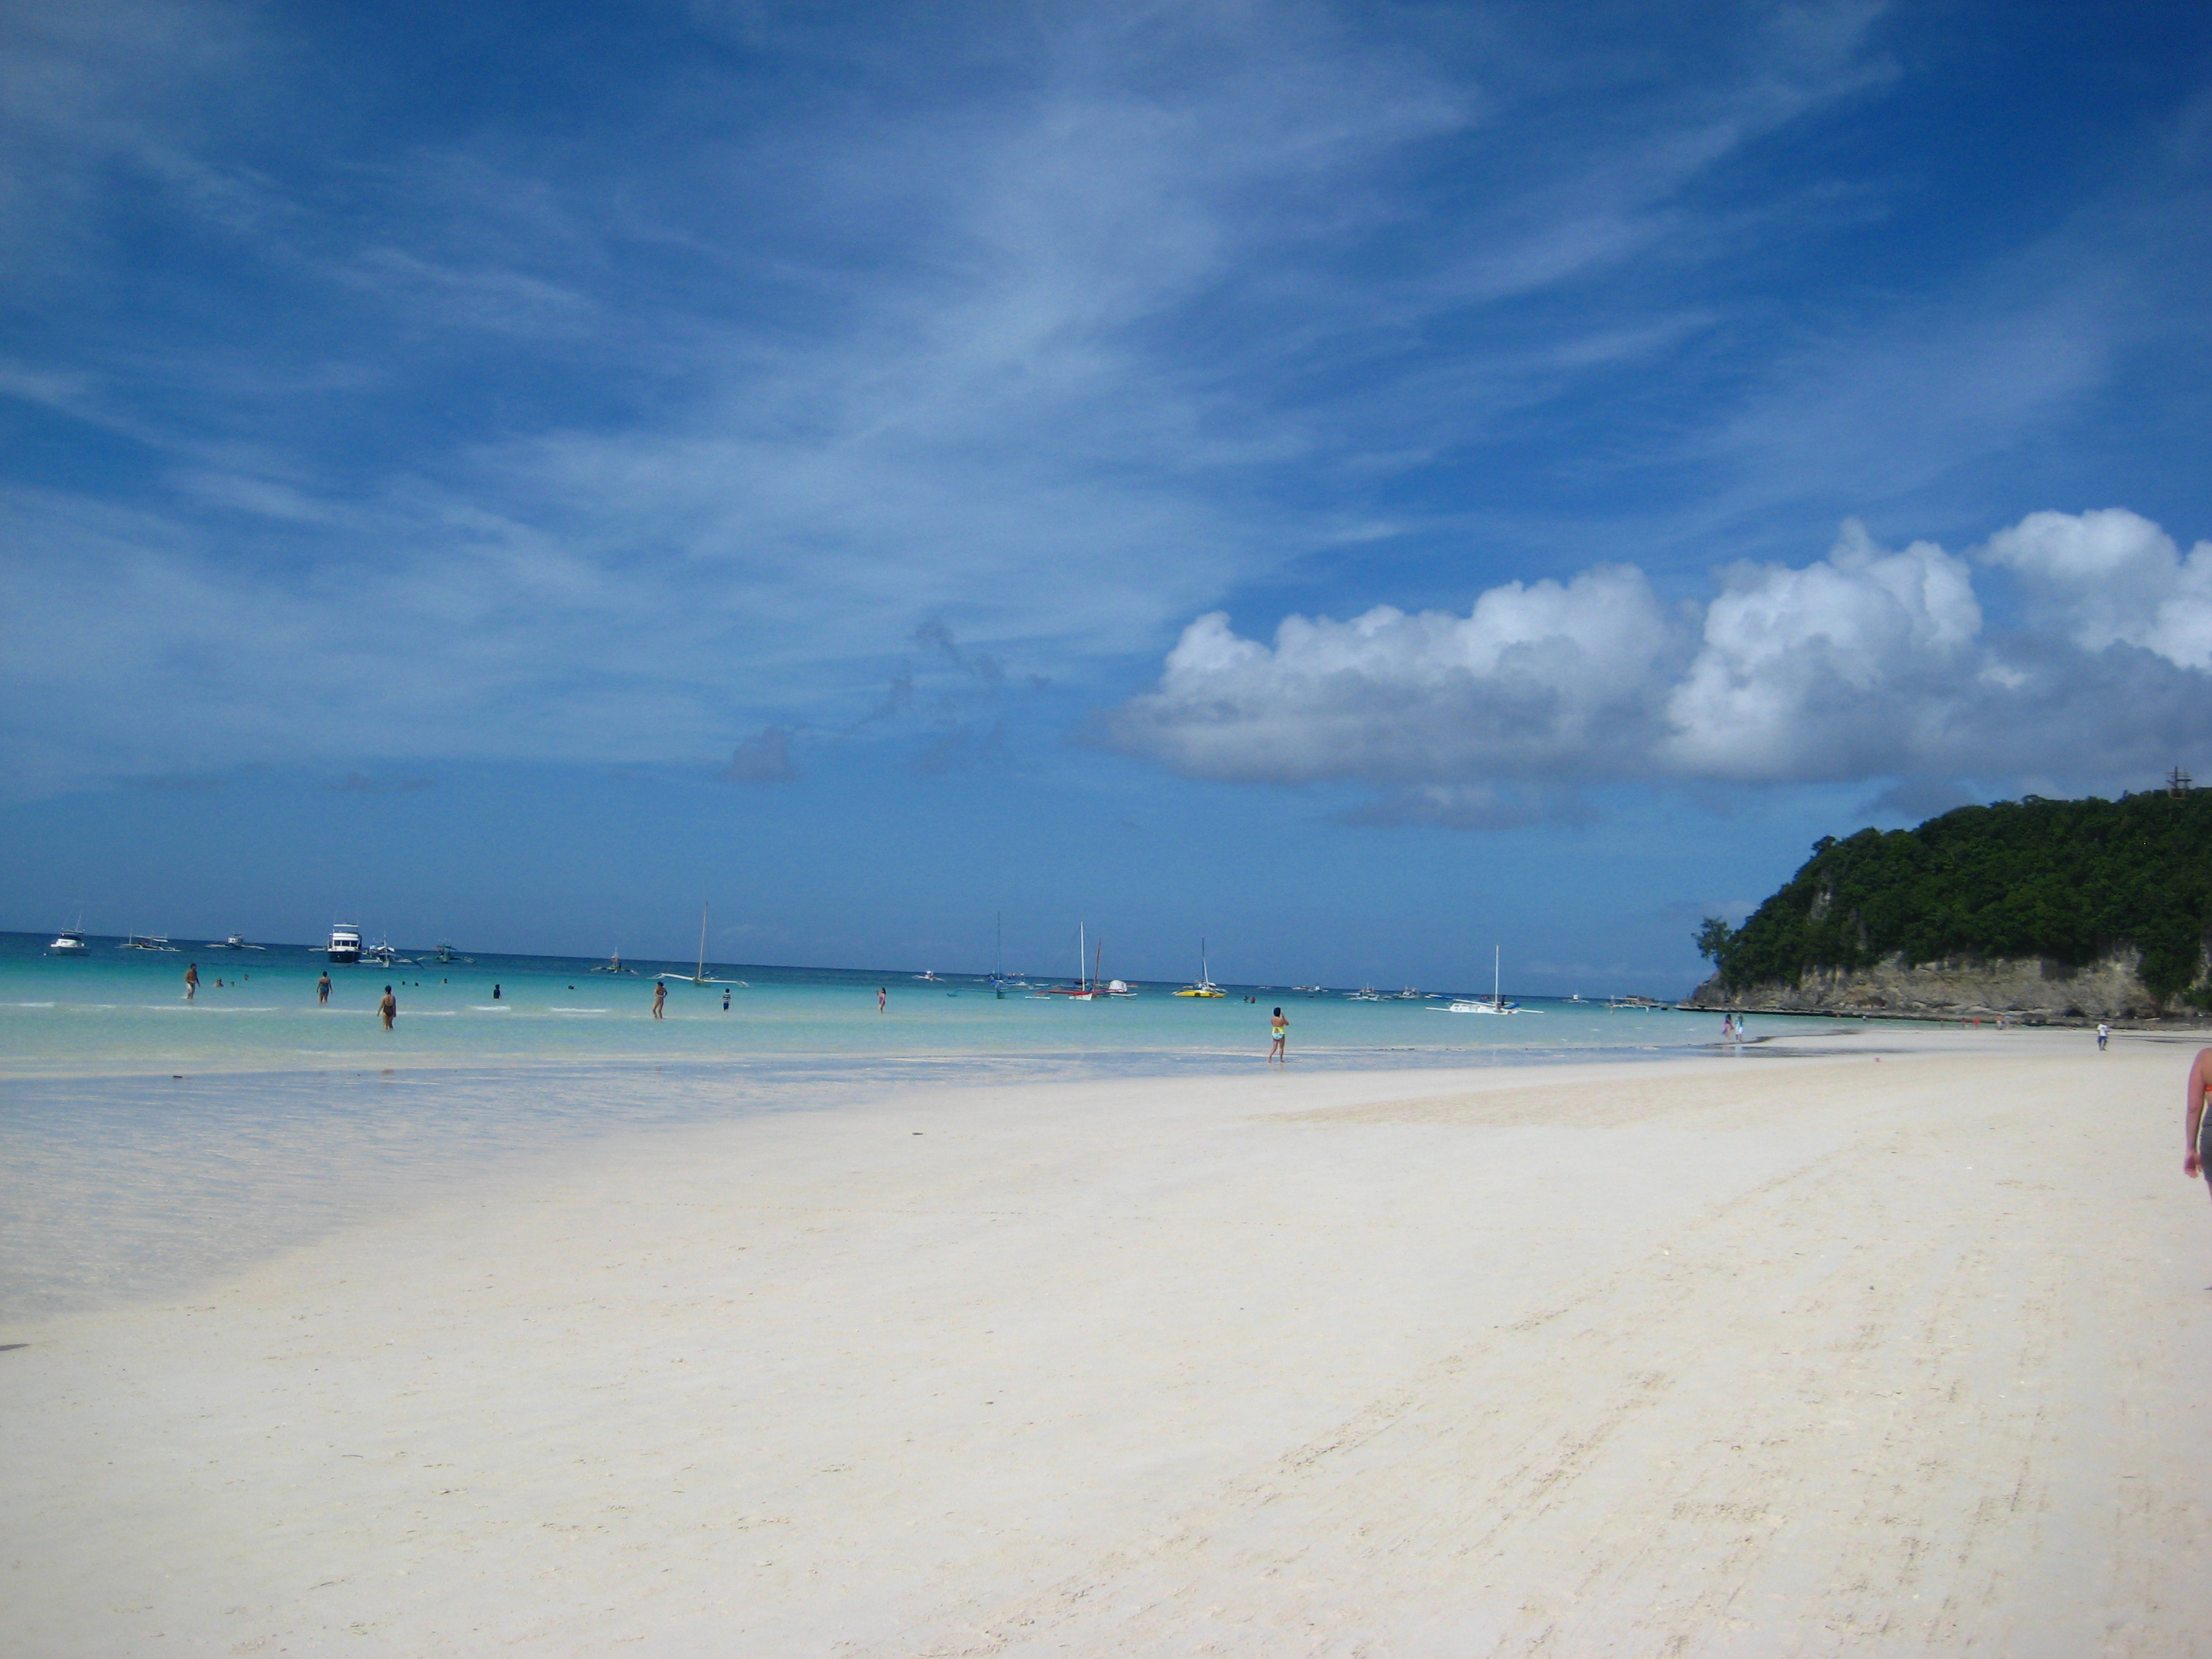 The white sand beach of Boracay Island in Philippines